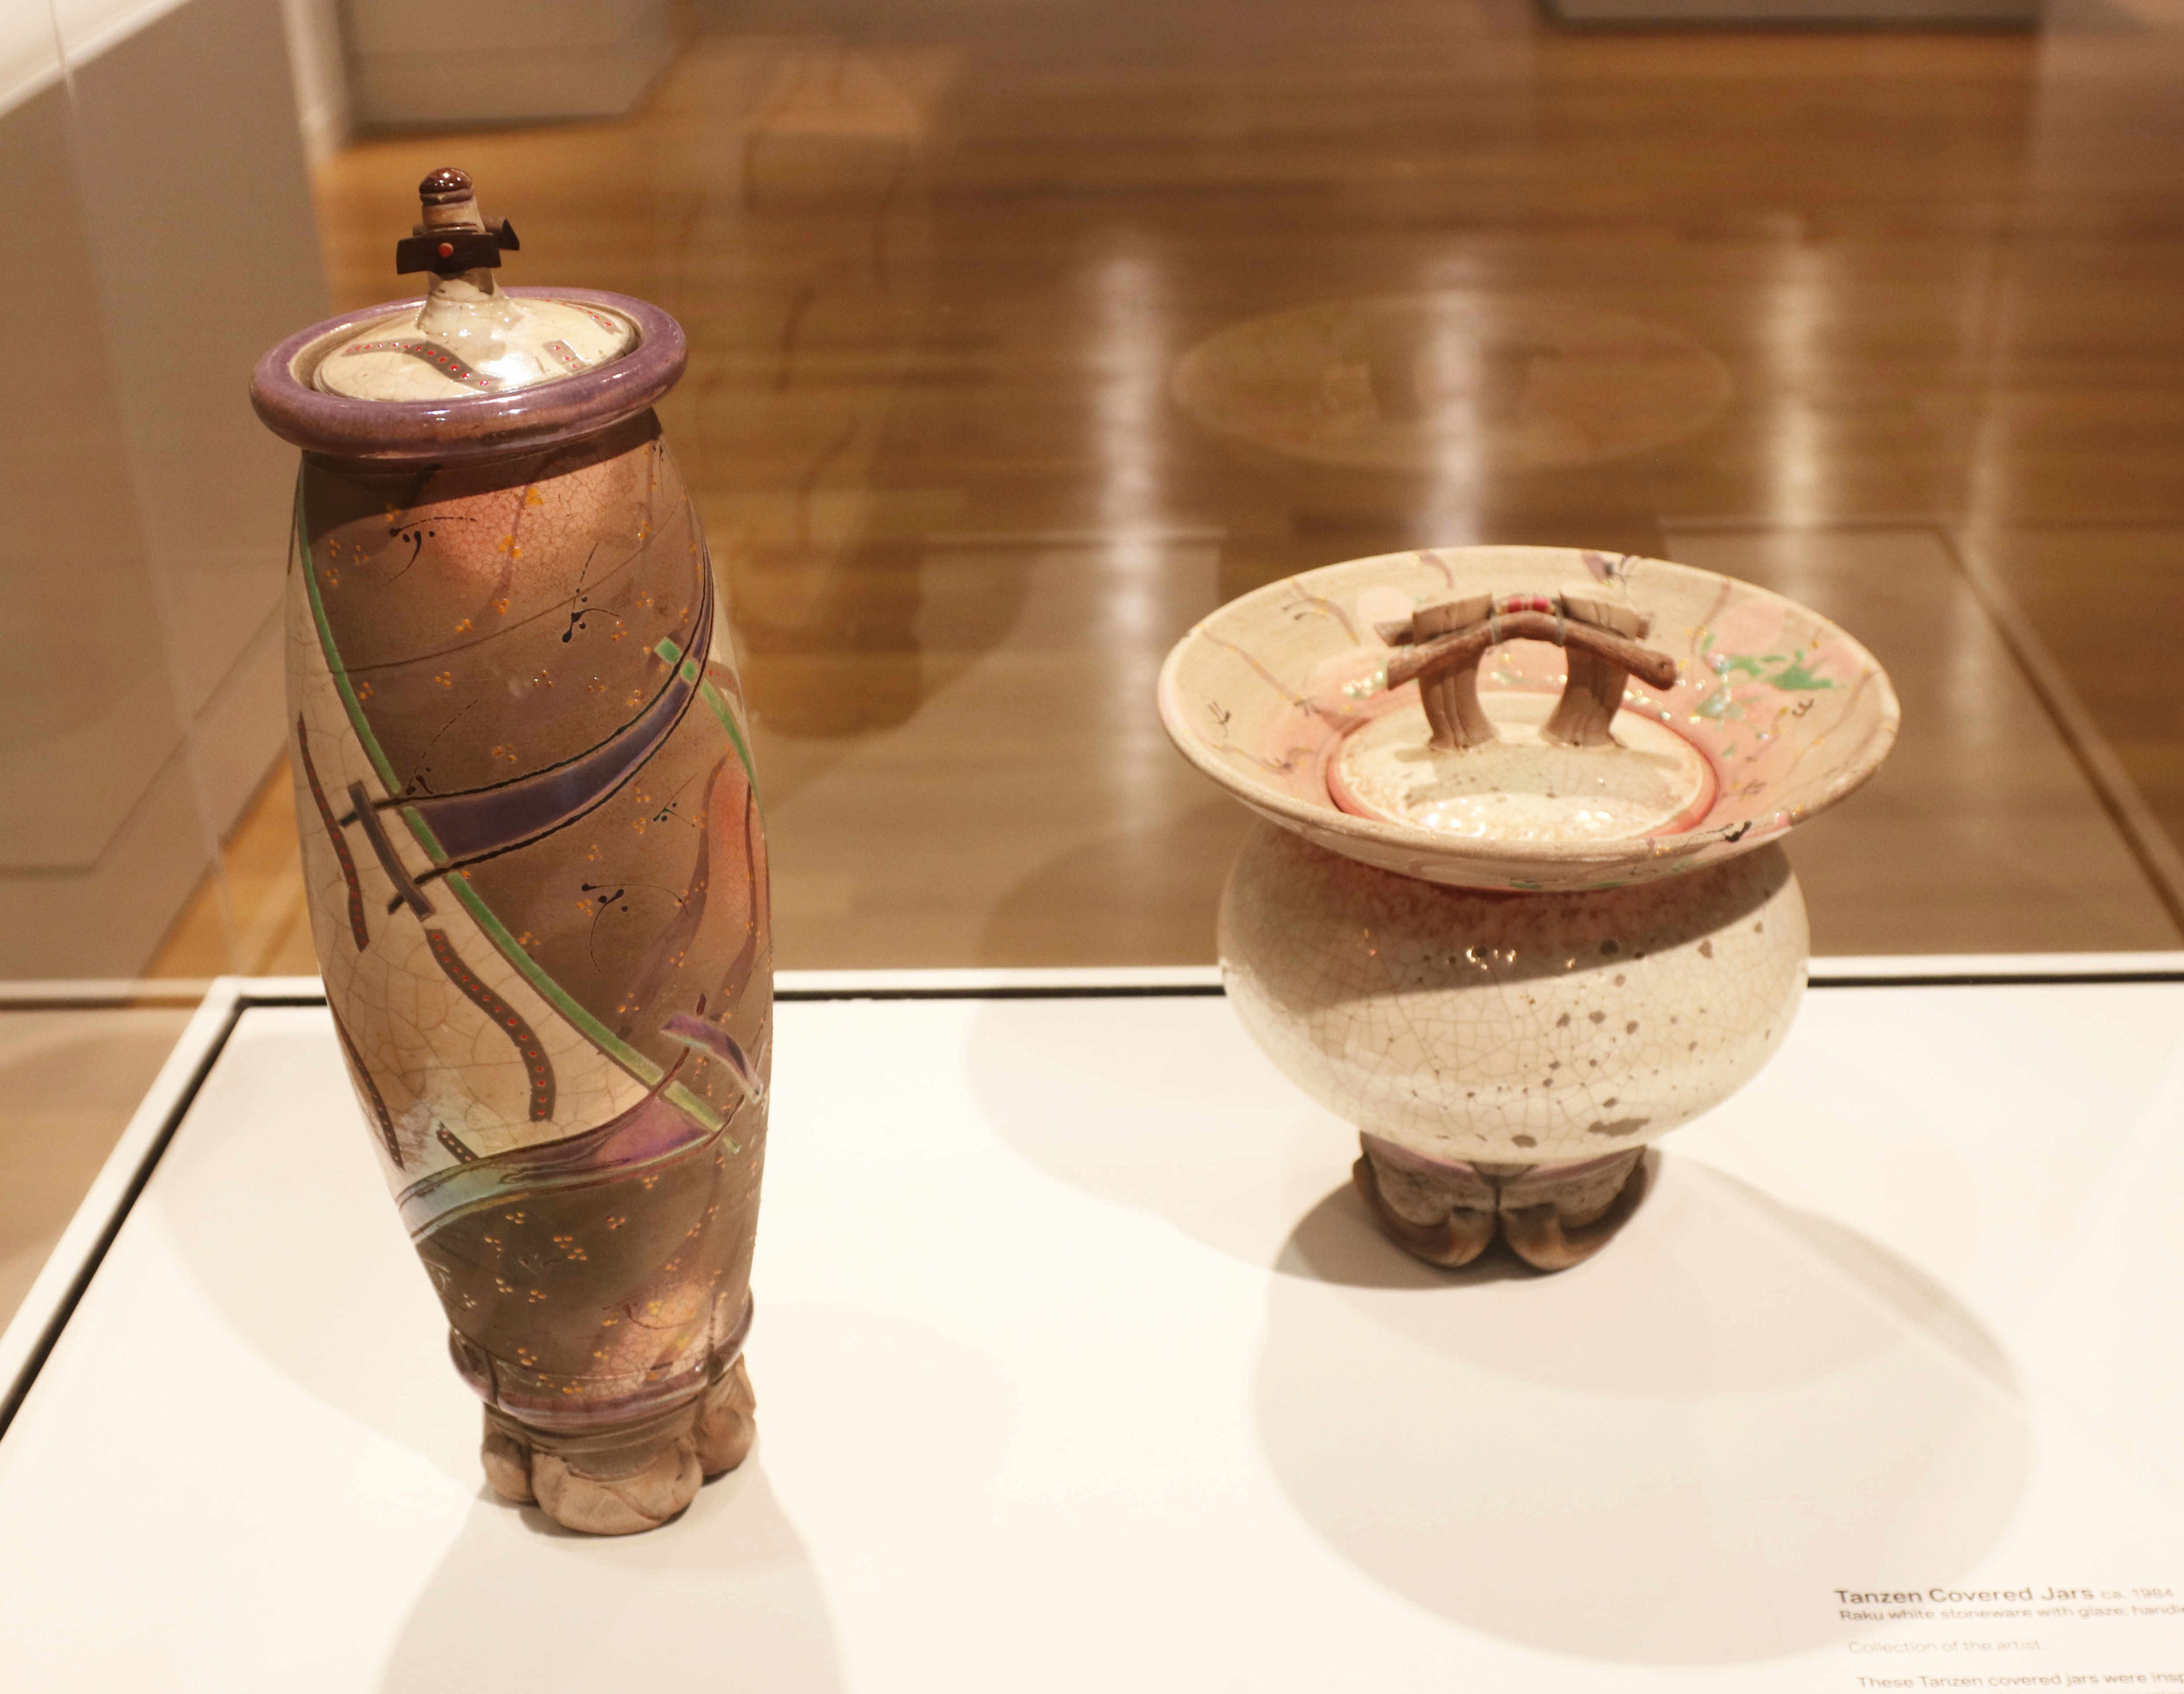 Michael Sherrill, Tanzen Covered Jars, 1984. Raku white stoneware with glaze, handle includes wood.